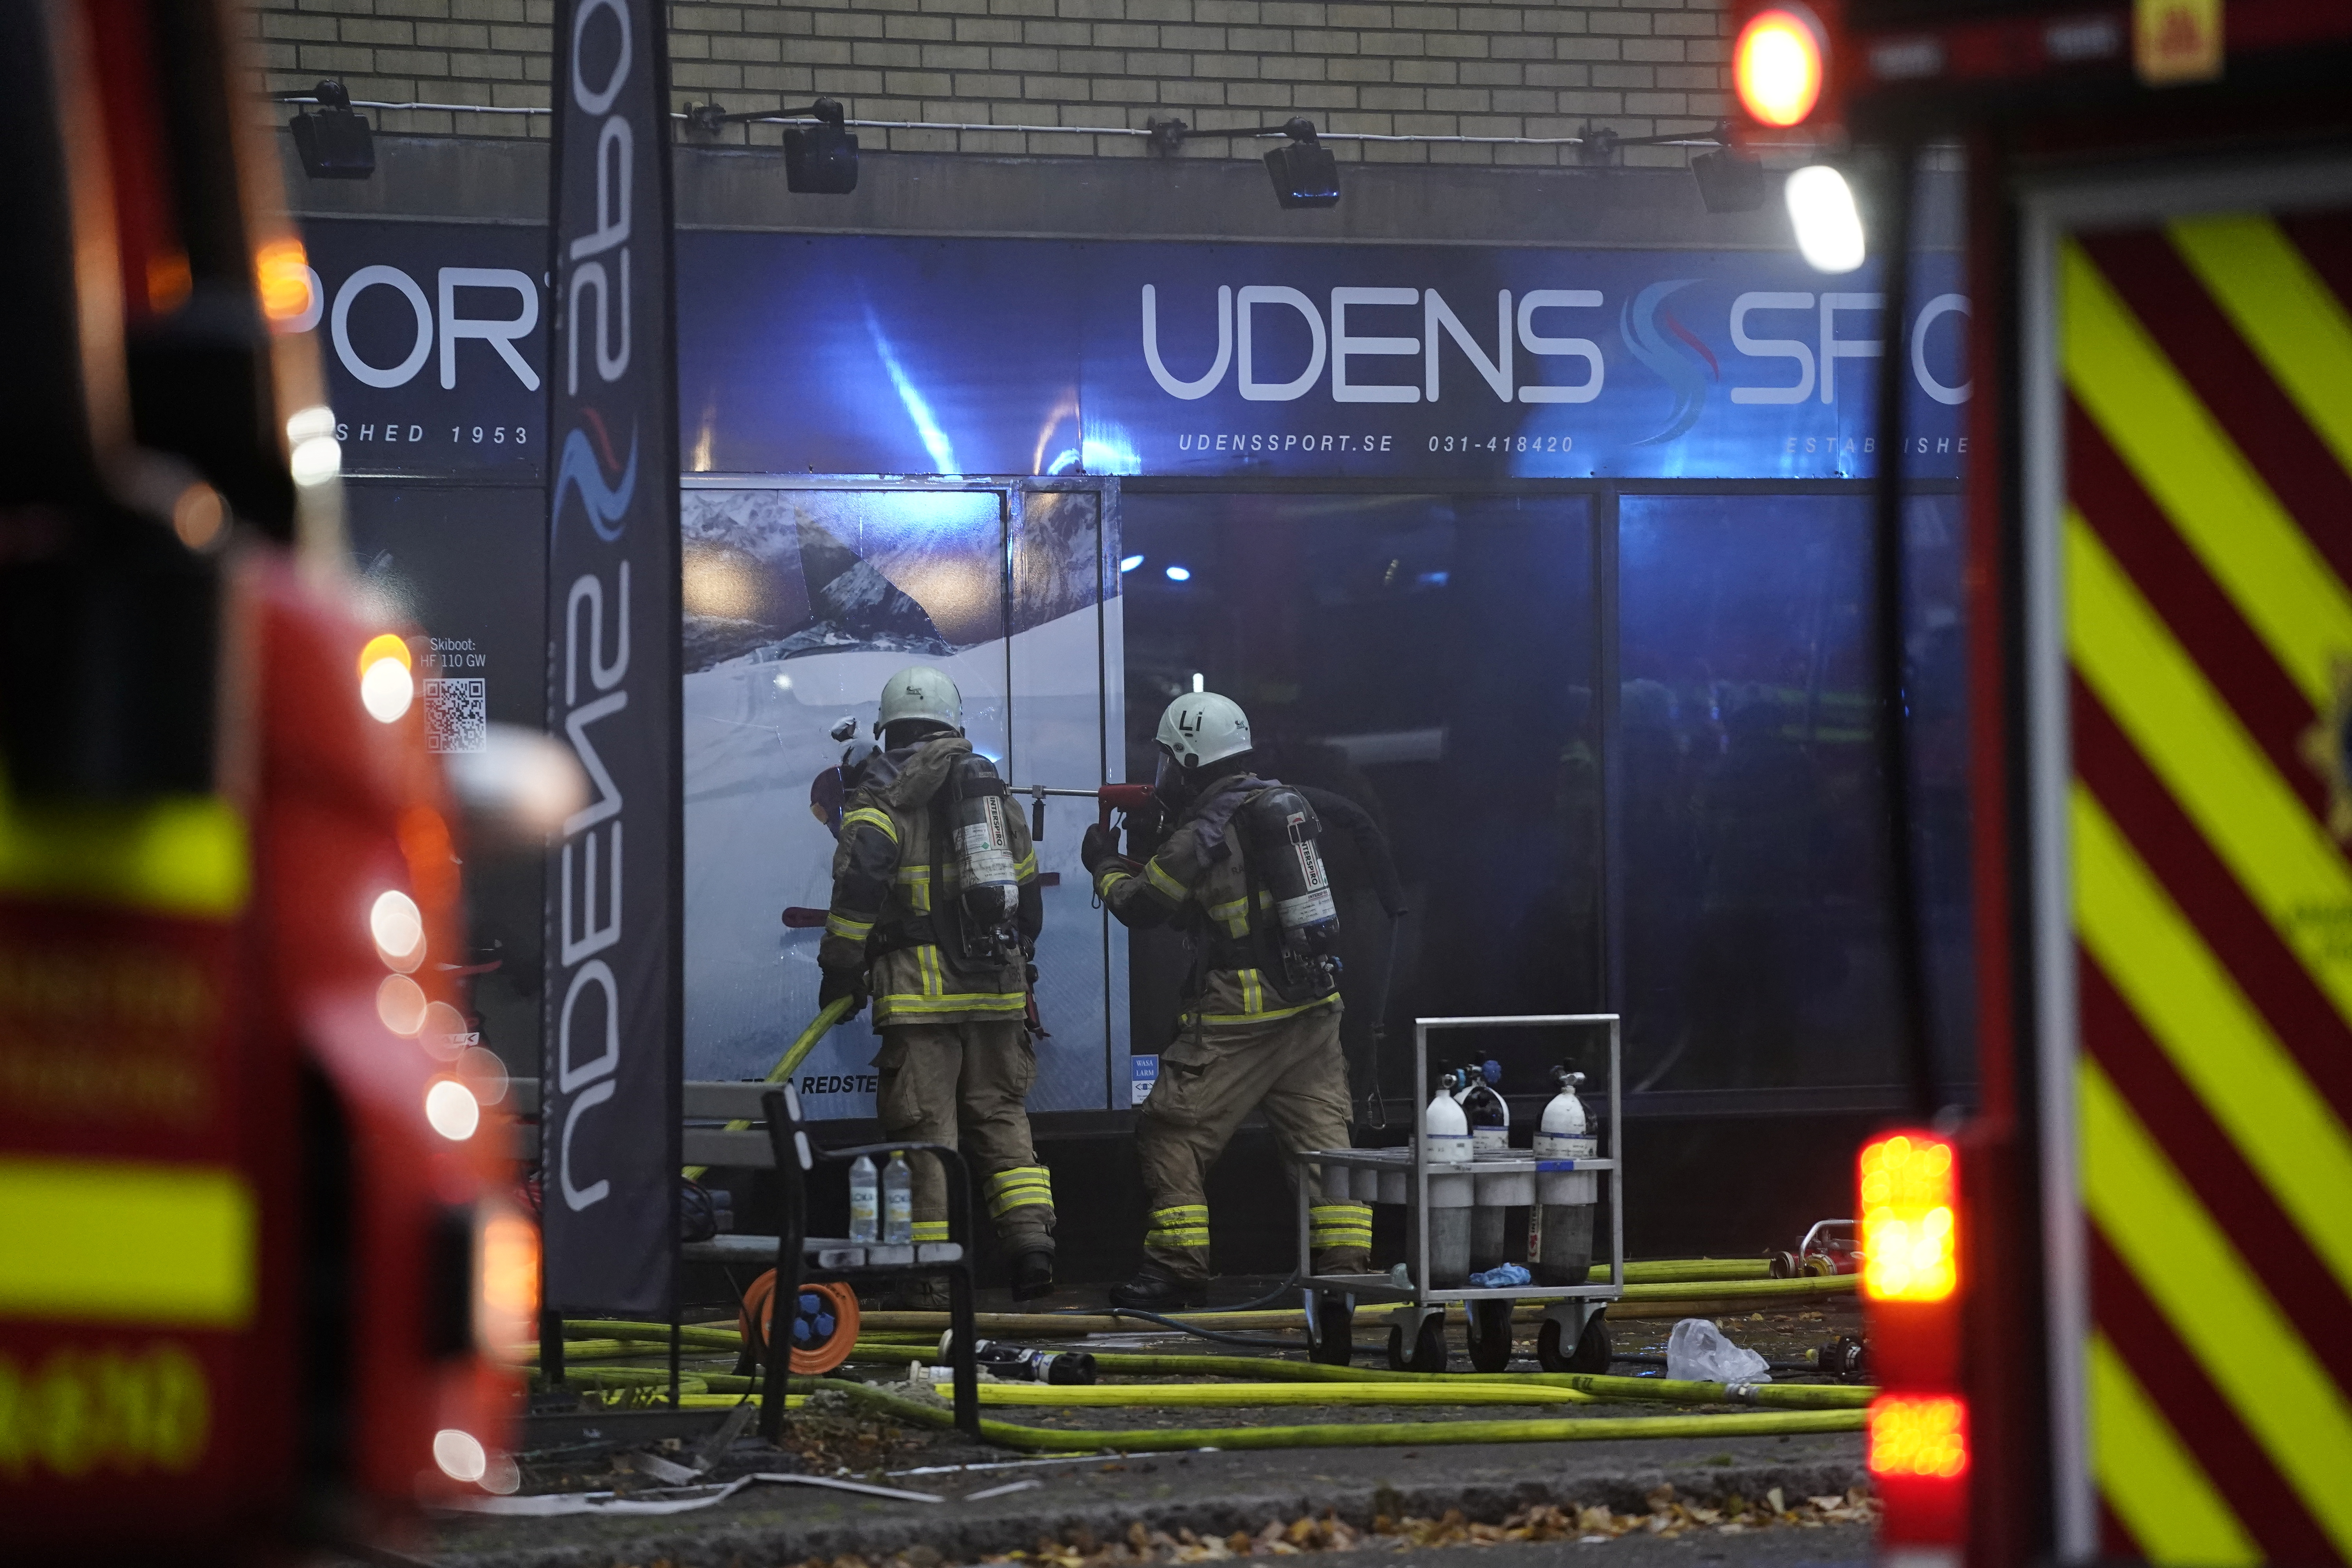 An emergency services crew works to evacuate people and put out fire after an explosion hit an apartment building in Annedal, central Gothenburg, Sweden September 28, 2021. Larsson Rosvall / TT News Agency/via REUTERS